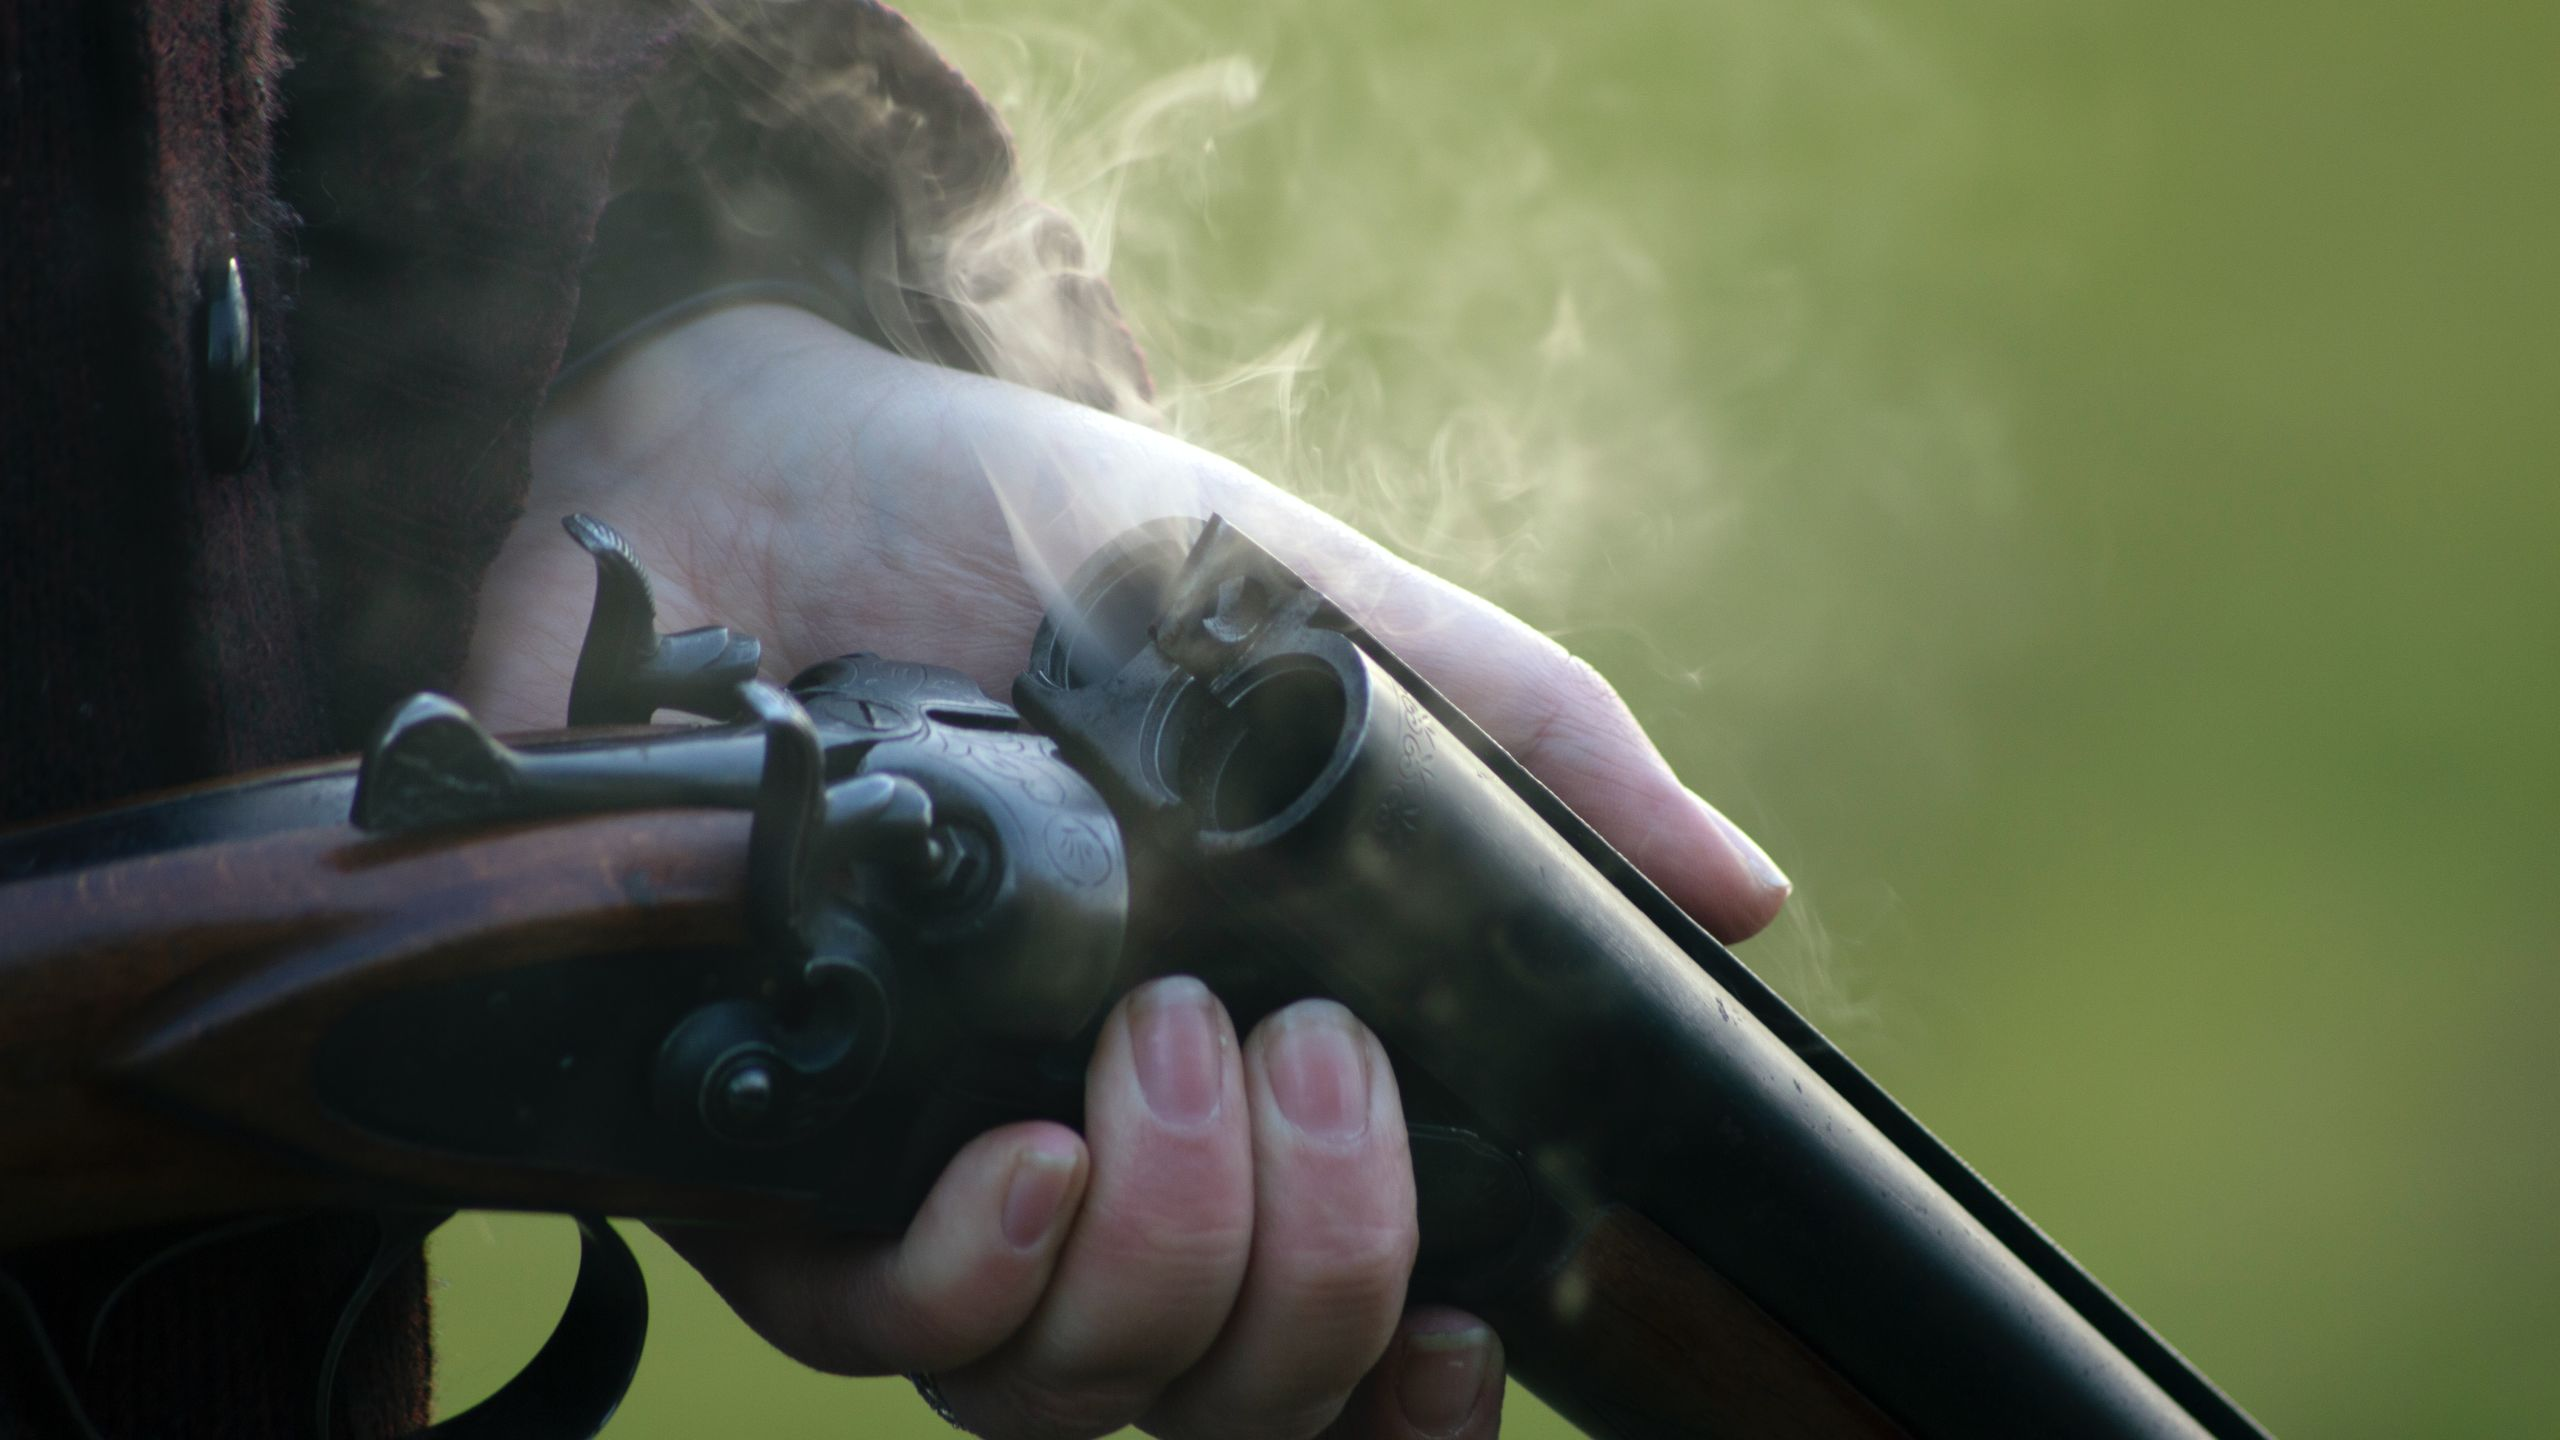 Image of a smoking shotgun